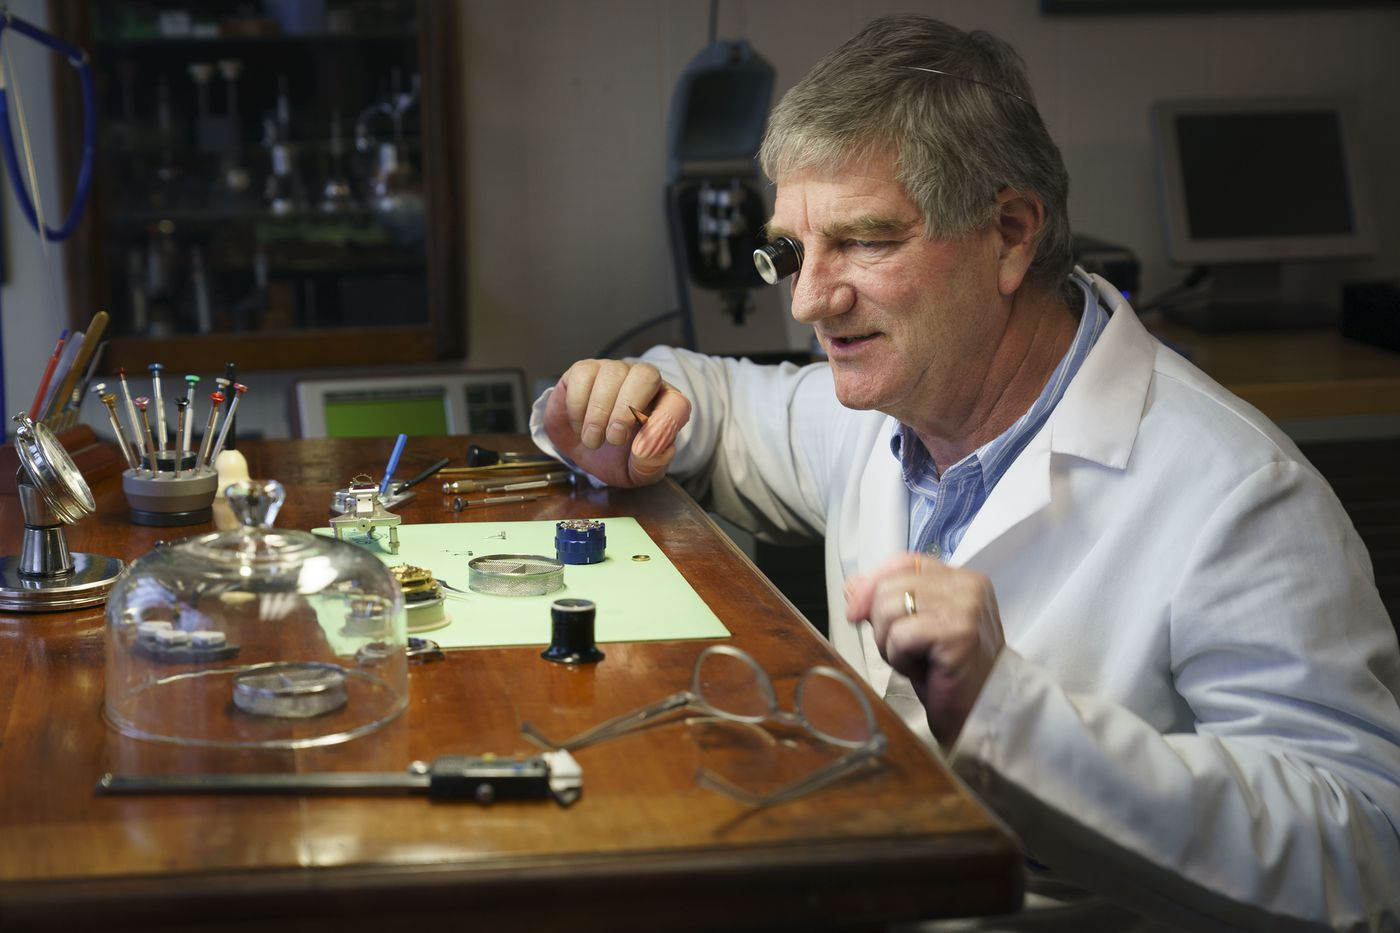 No One Repairs Watches Any More, So Why is This Wayne Watchmaker Turning Away Customers?